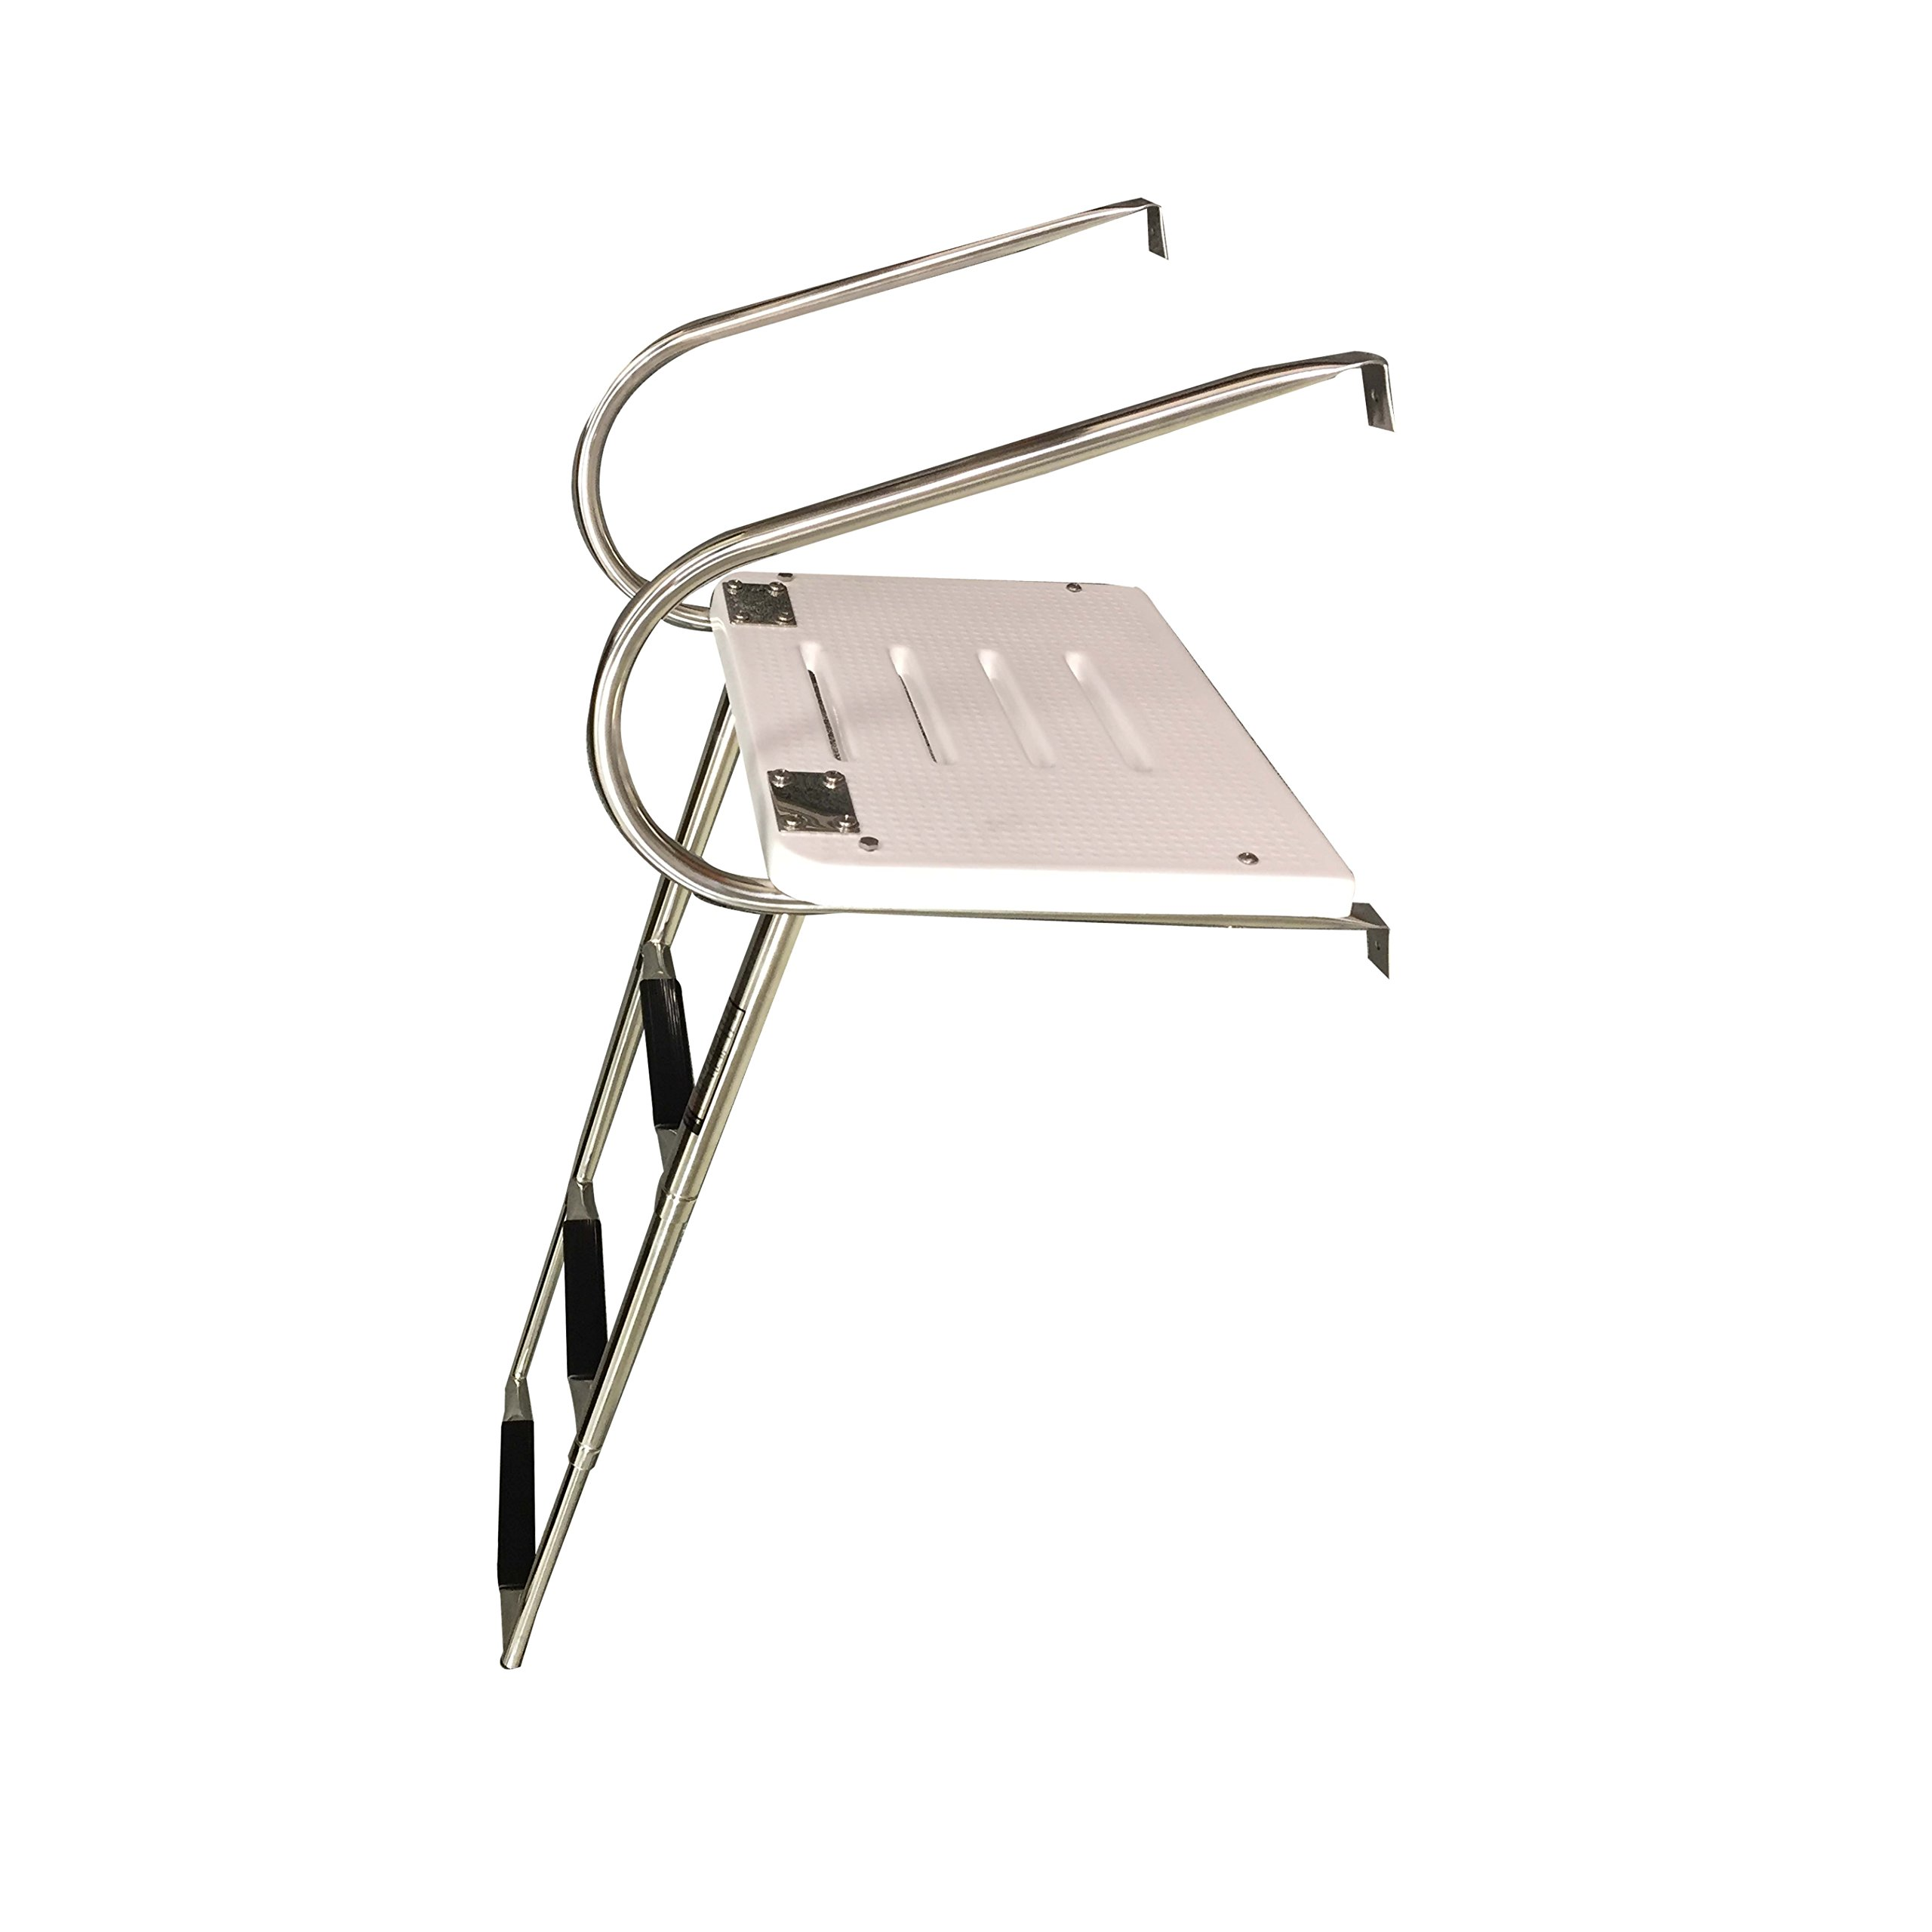 Pactrade Marine Boat Universal Swim Platform under Mount Telescopic Ladder, 3 Step in/Outboard by Pactrade Marine